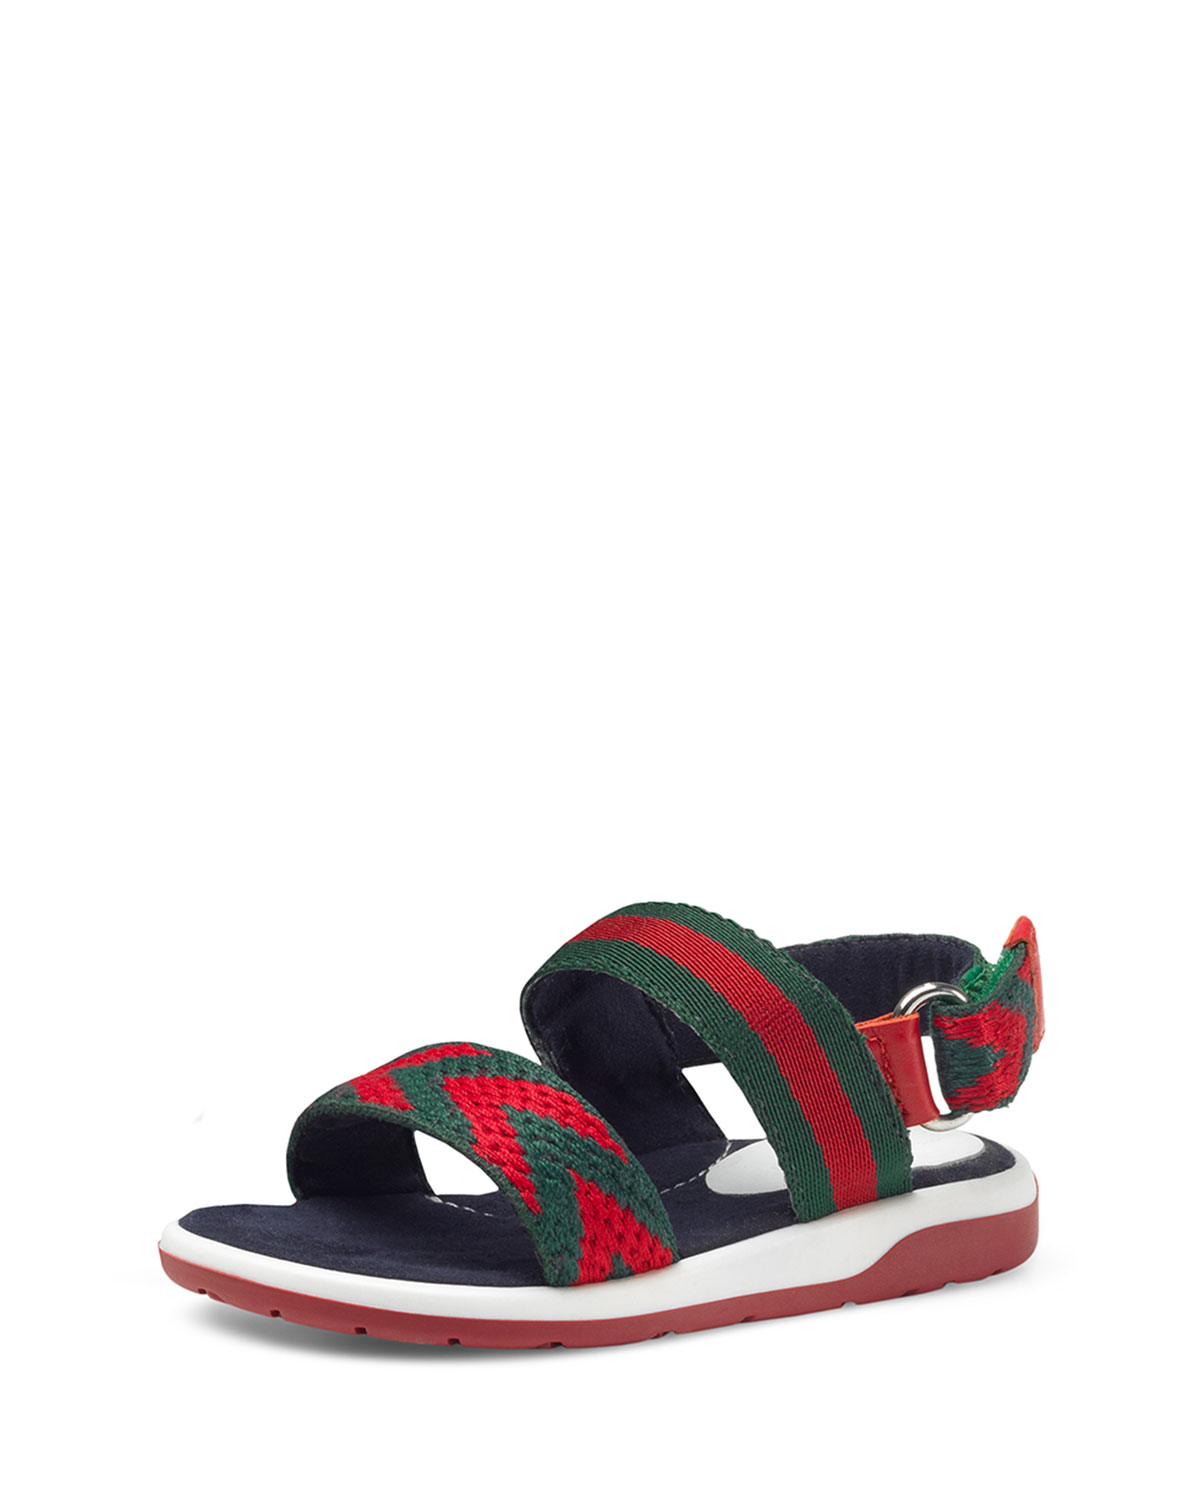 57e8cc9d6 Gucci Chevron Leather Sandals, Green/Red, Toddler | Neiman Marcus